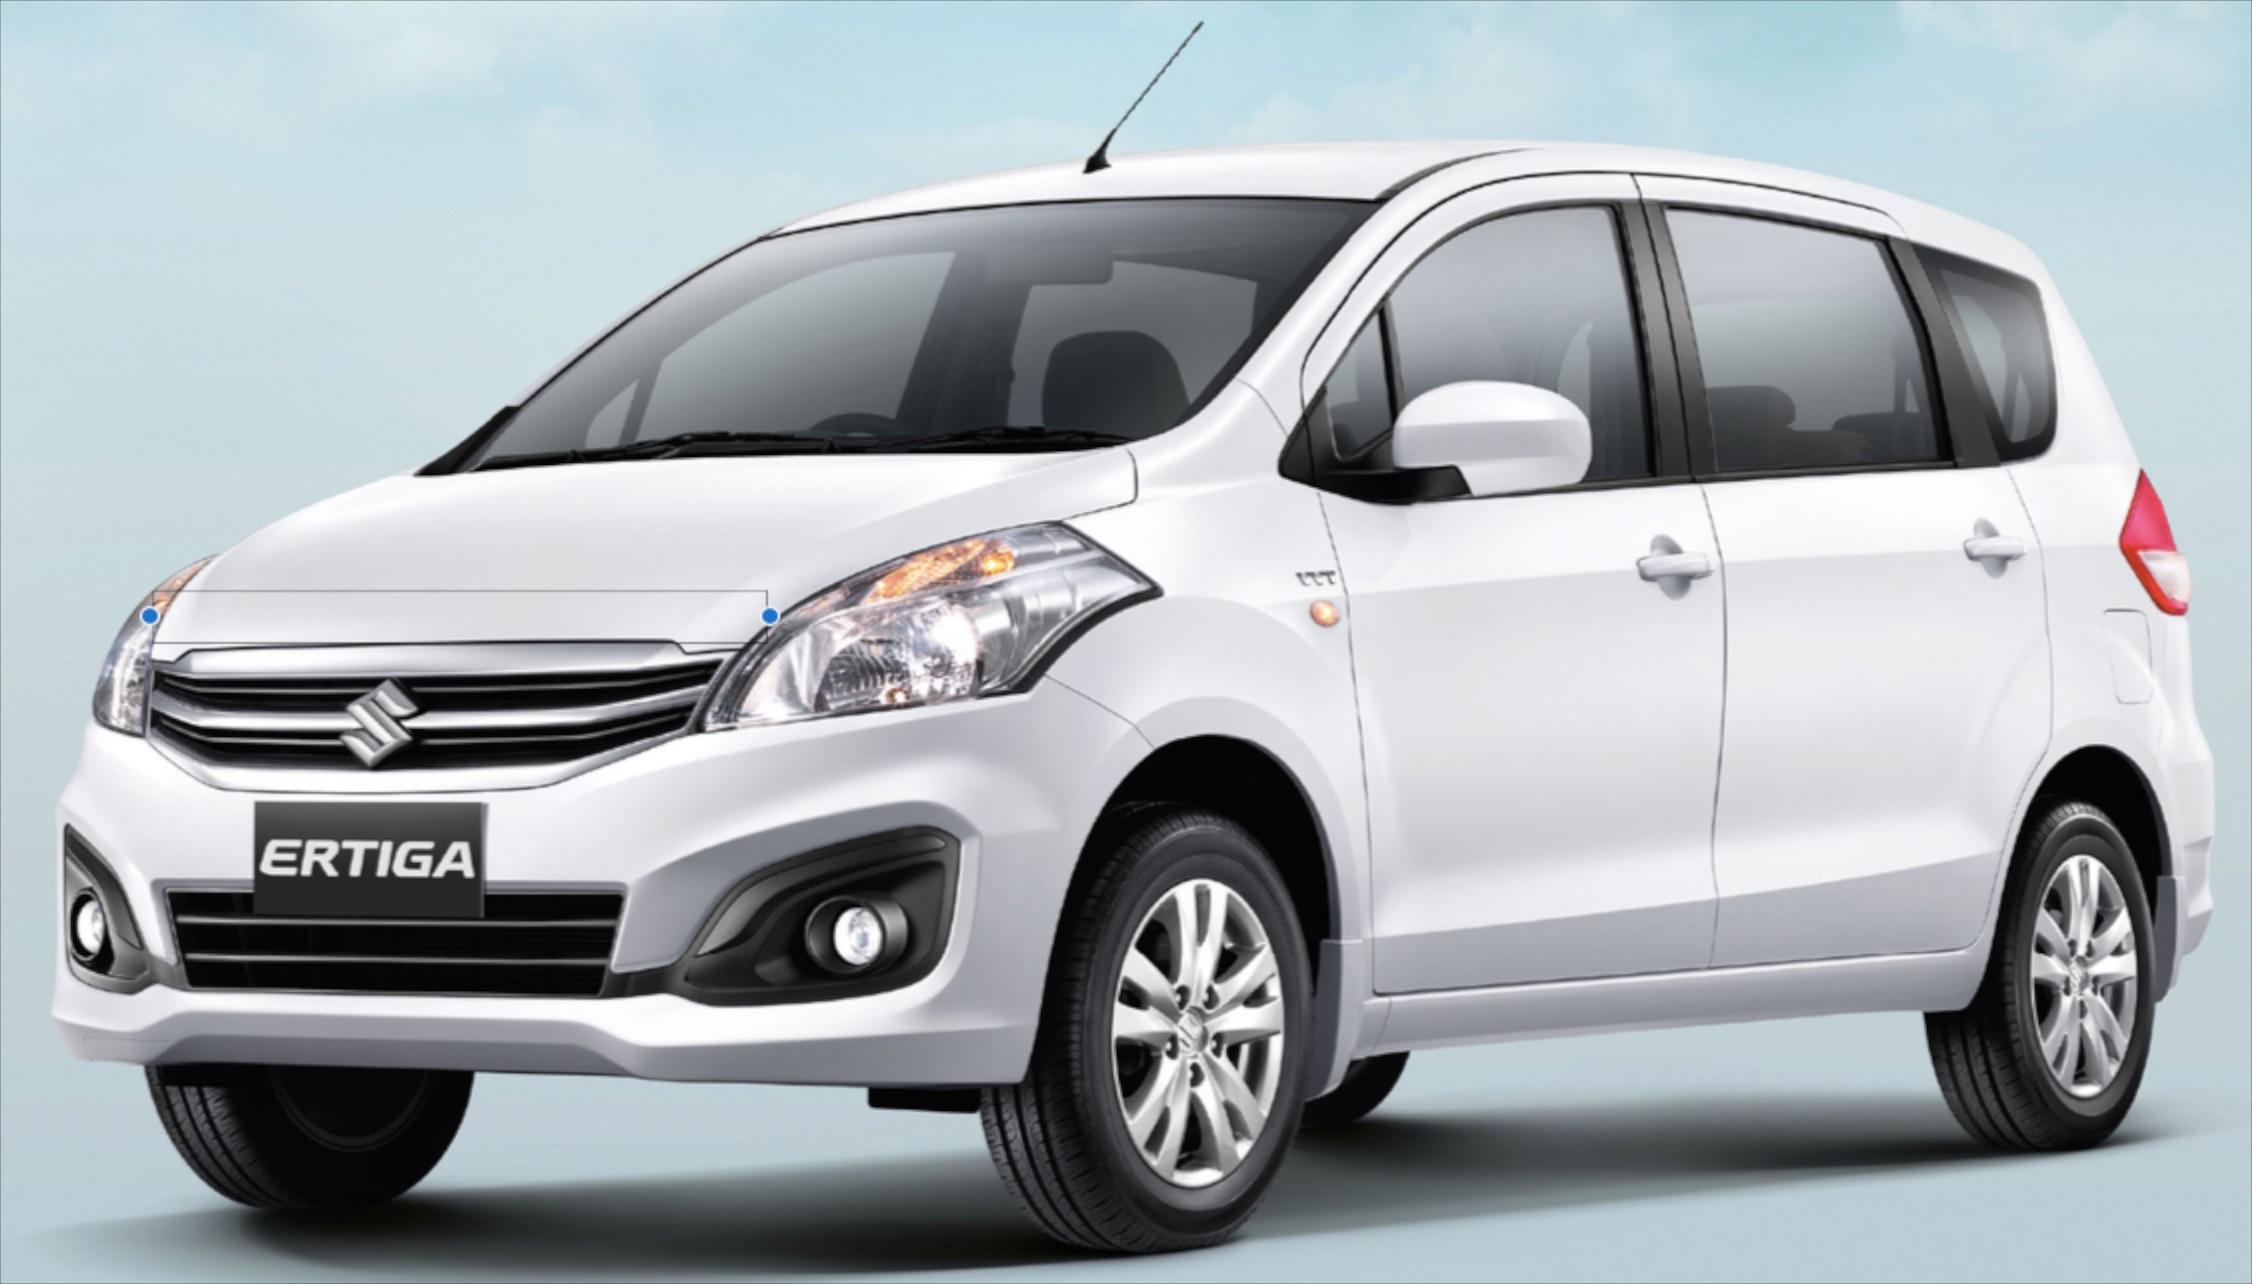 Suzuki Ertiga Diesel to debut in Indonesia early 2017